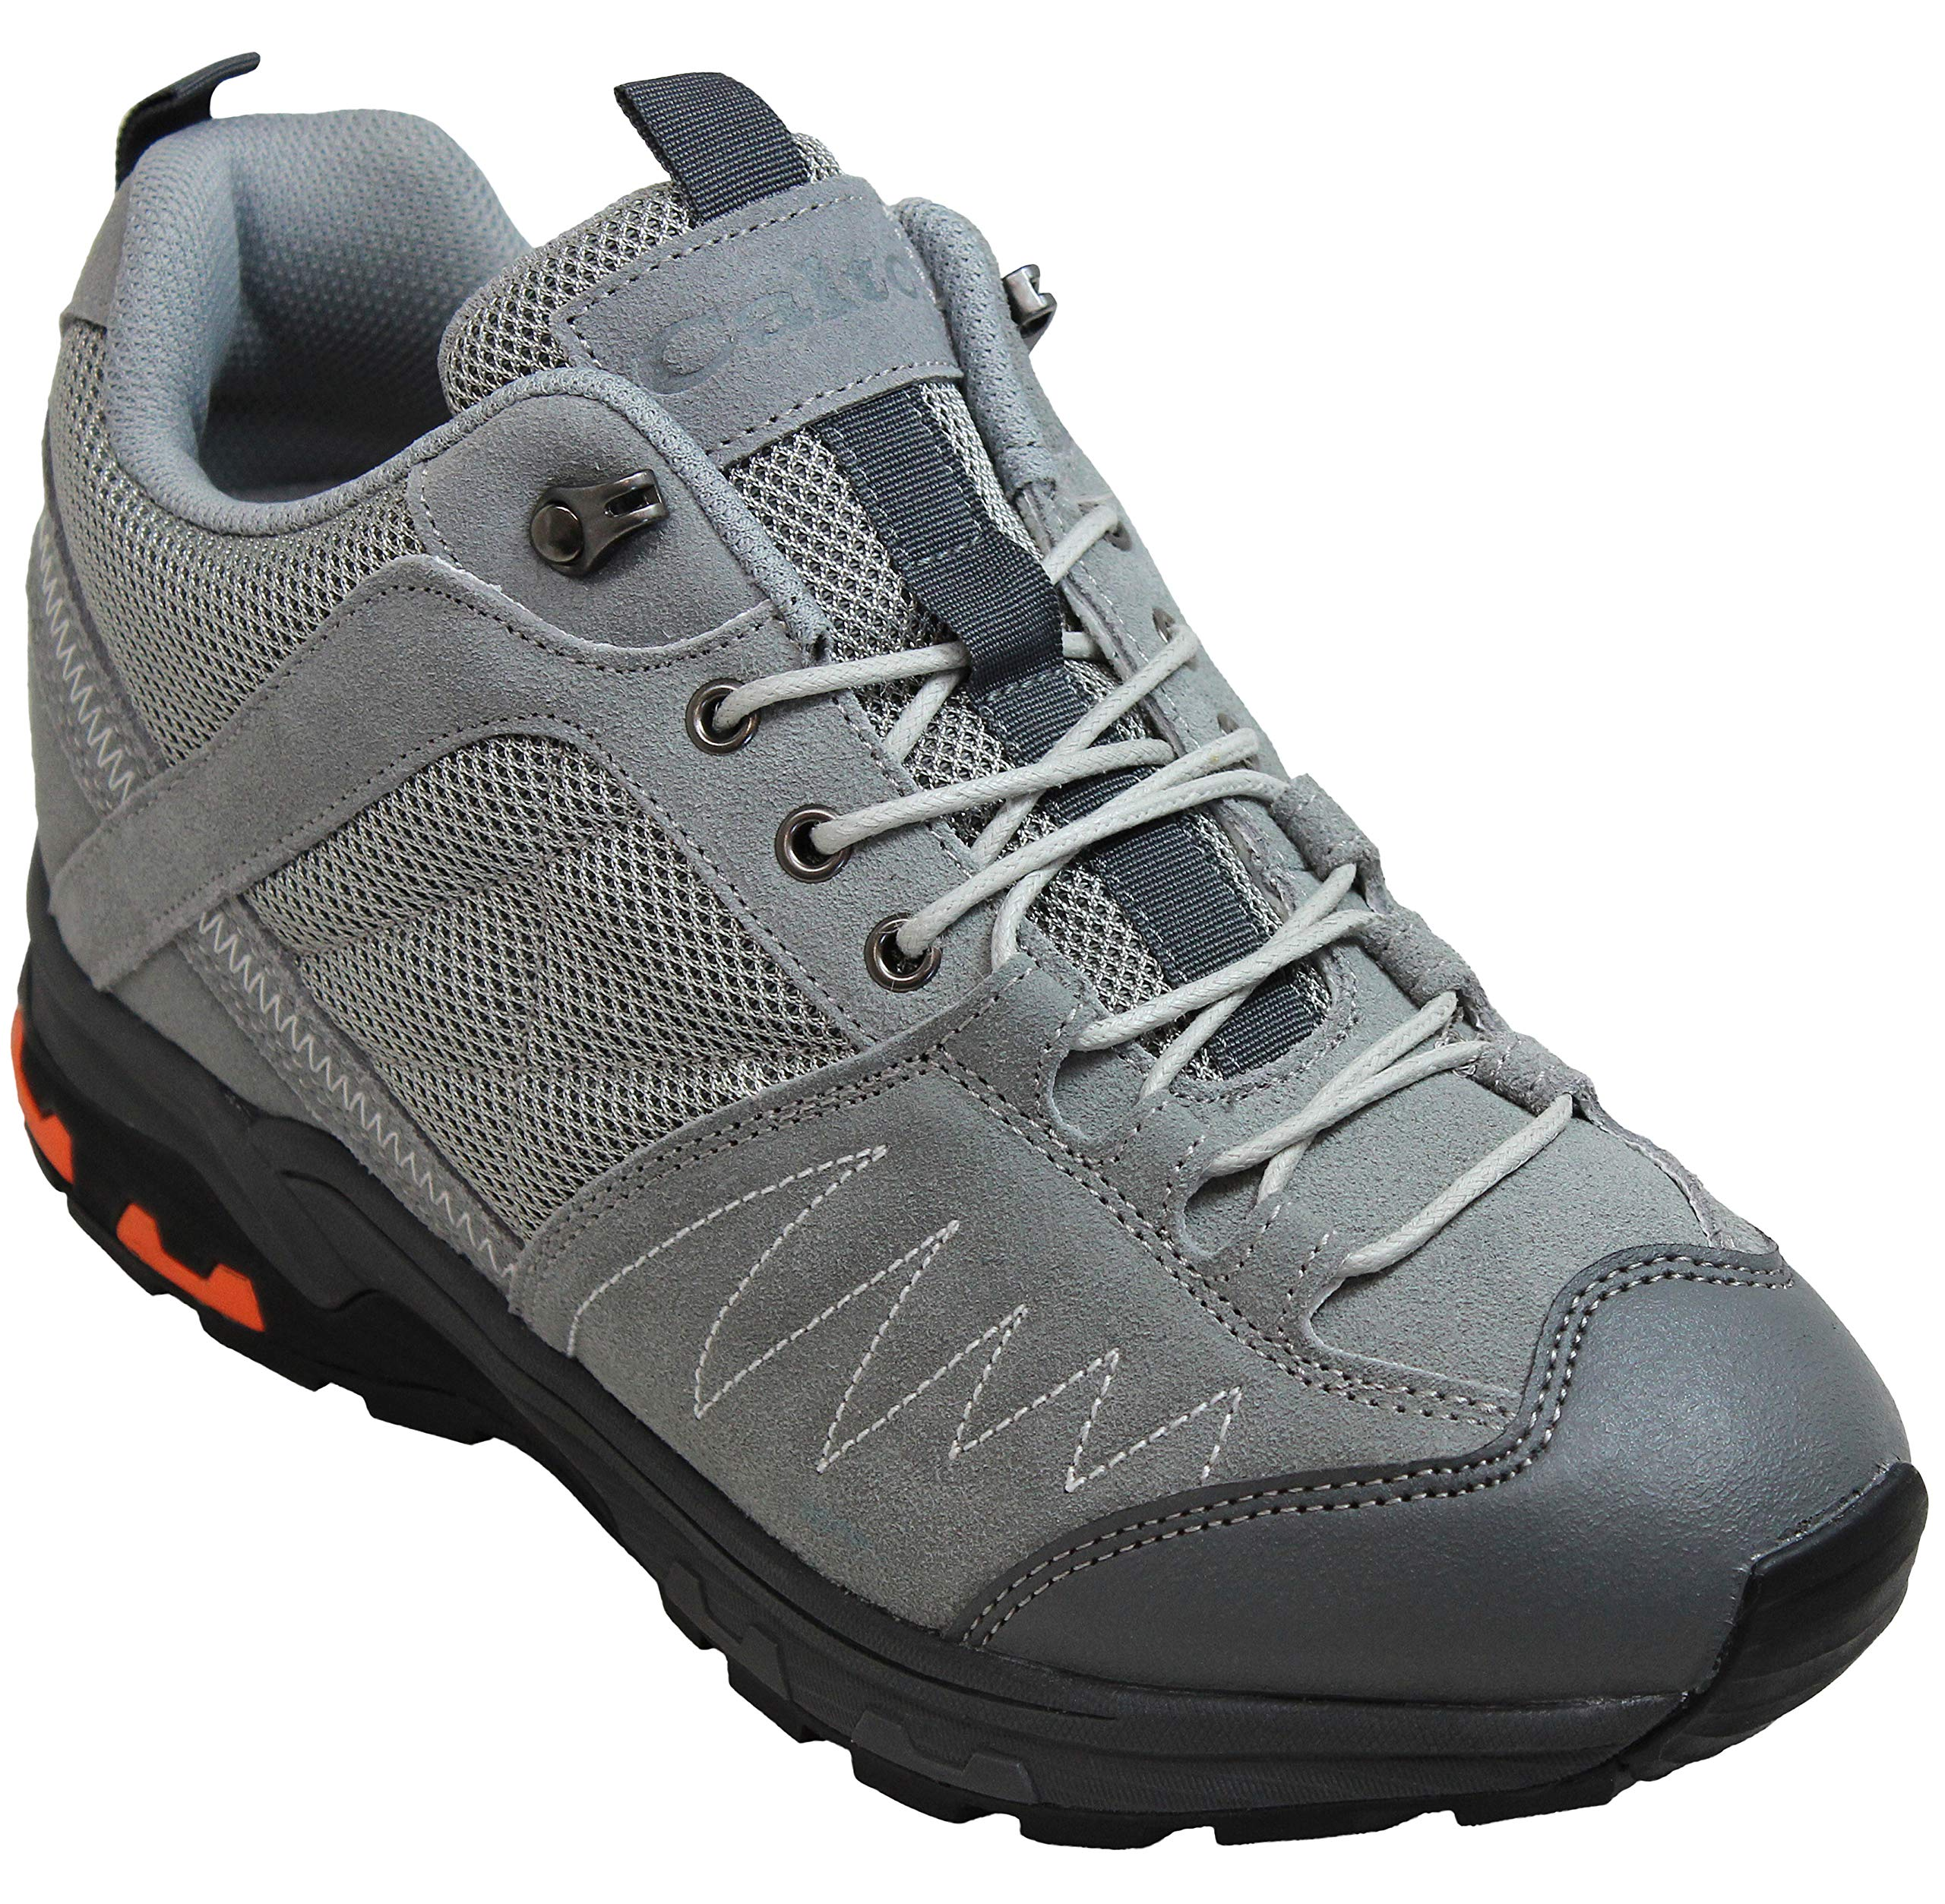 CALTO Men's Invisible Height Increasing Elevator Shoes - Grey Suede Lace-up Hiking Boots - 3.3 Inches Taller - H2043